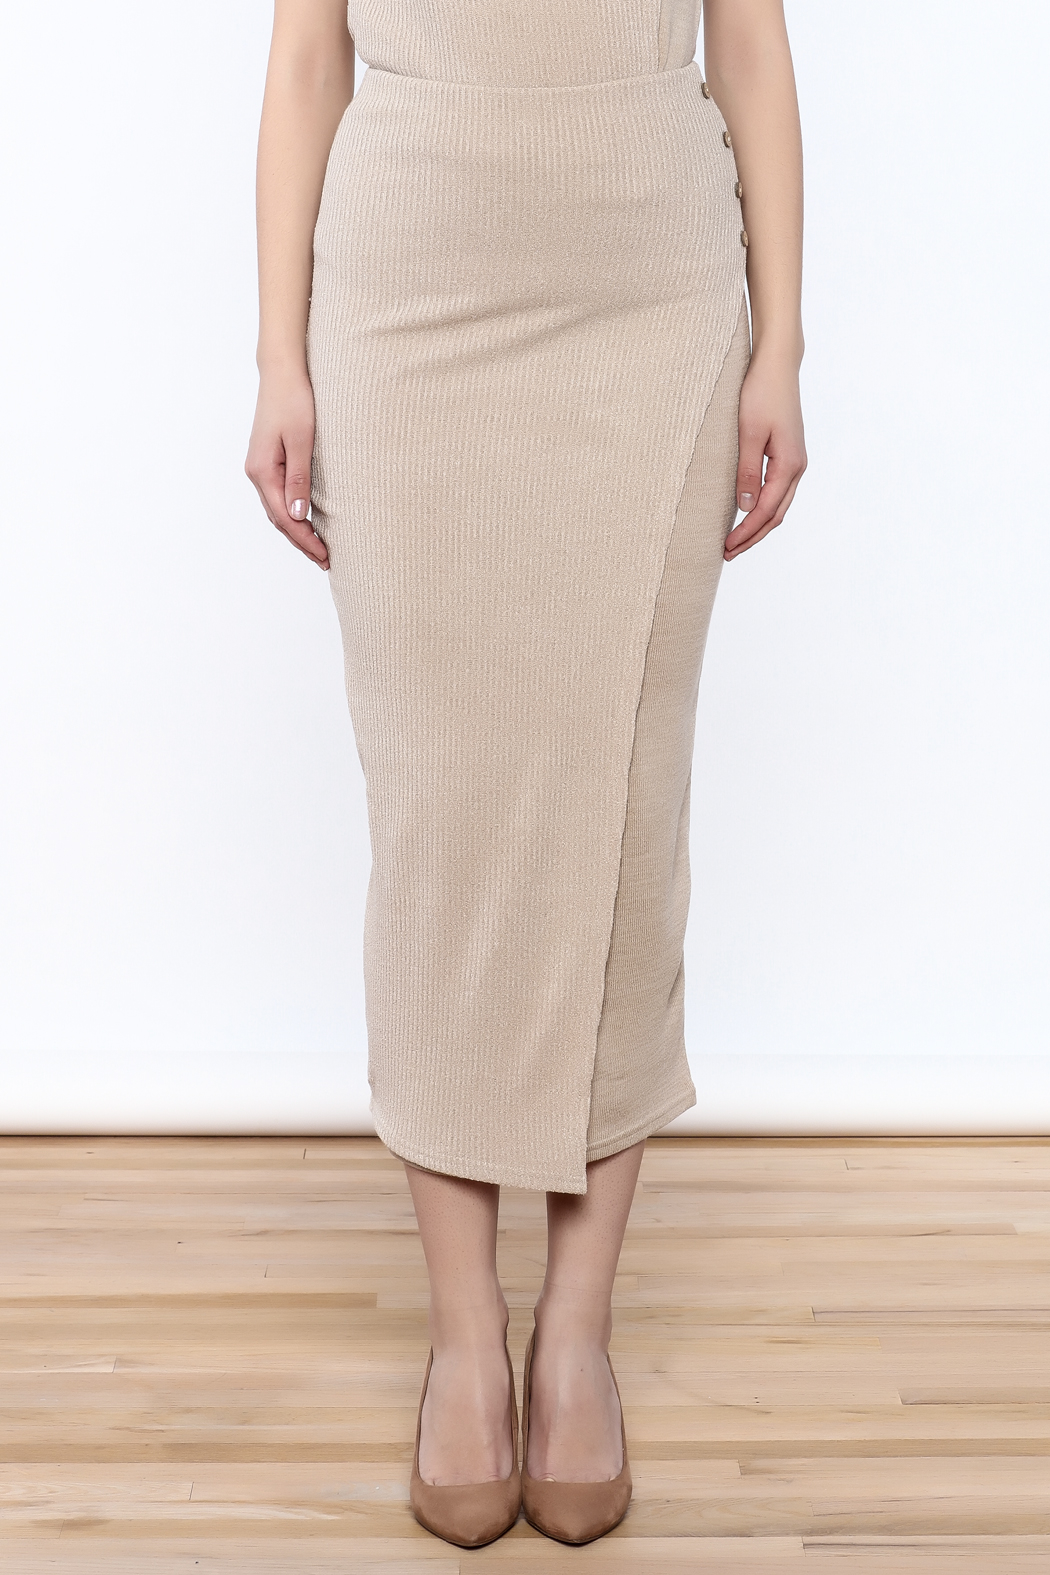 Moon River Beige Knit Midi Skirt - Side Cropped Image